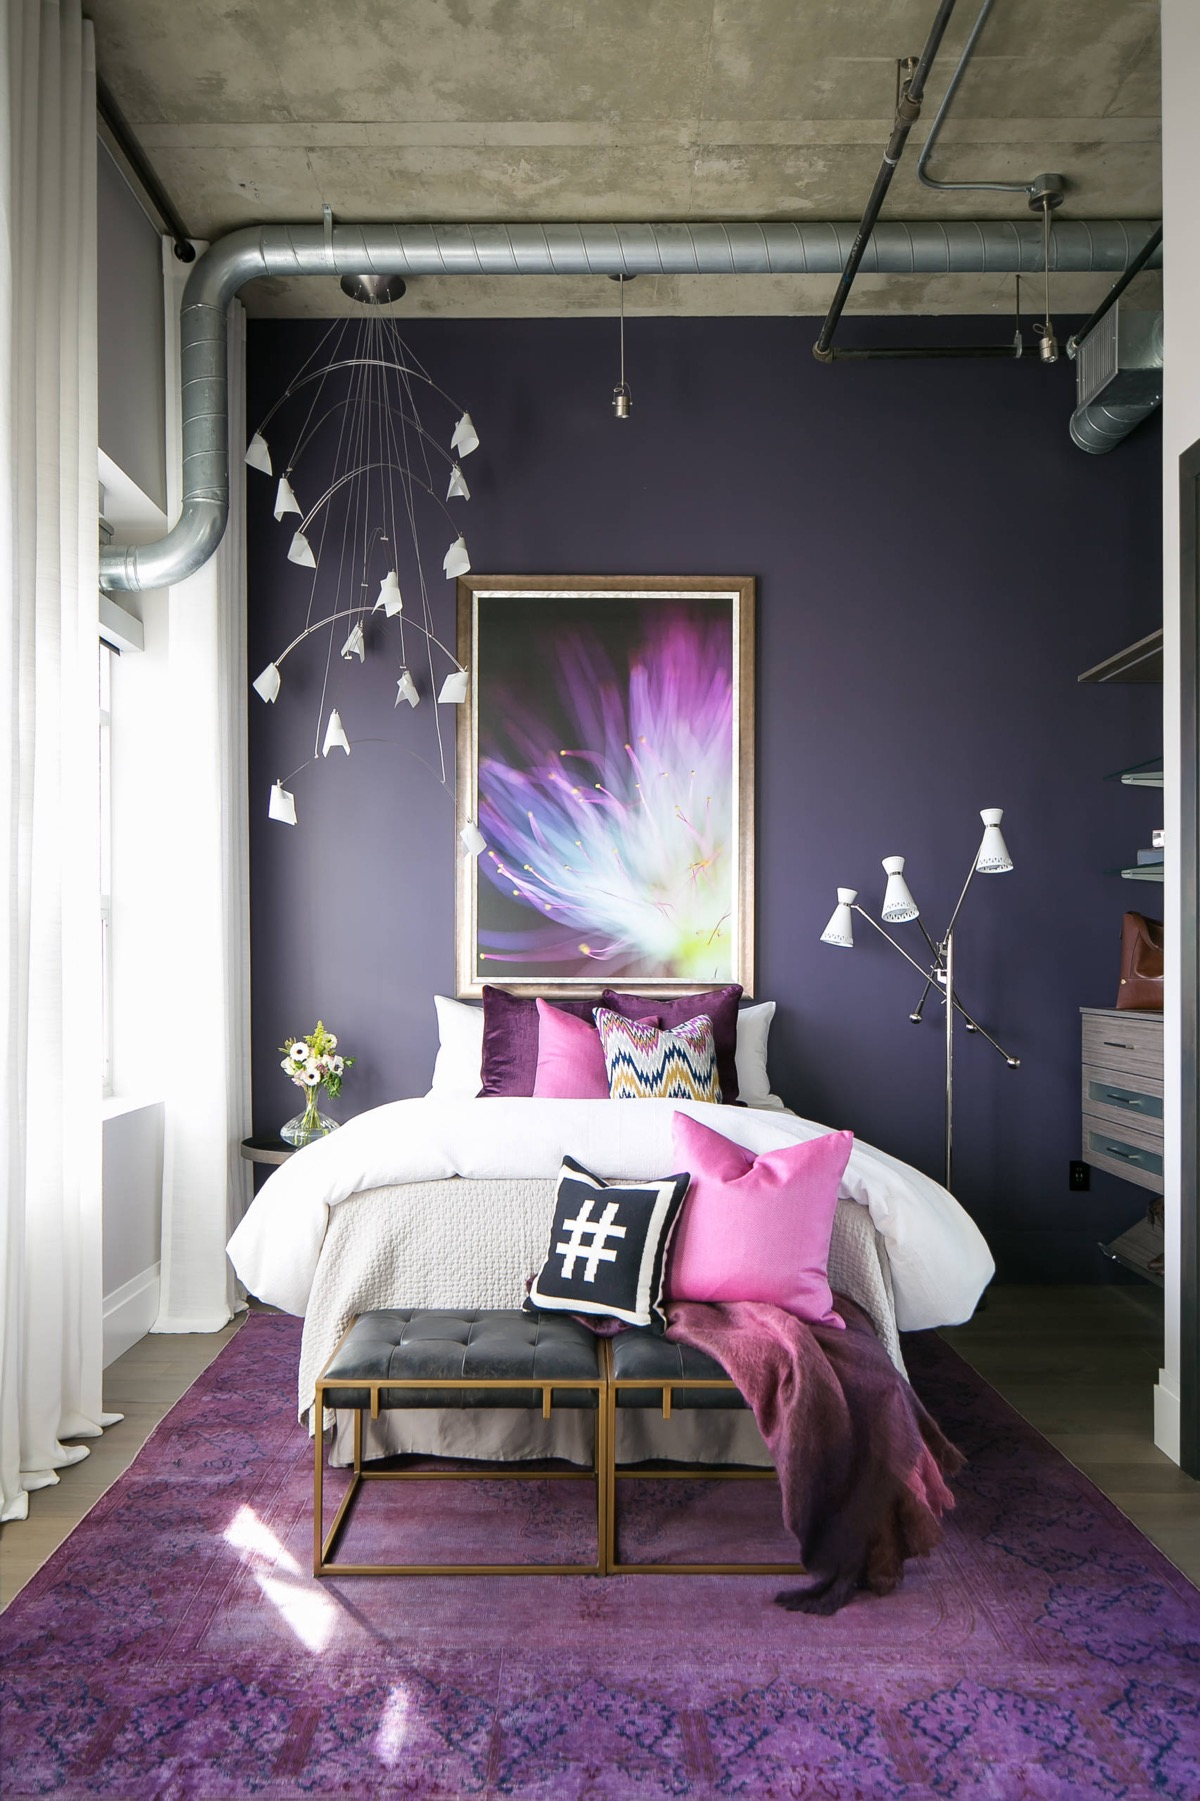 33 Purple Themed Bedrooms With Ideas, Tips & Accessories To